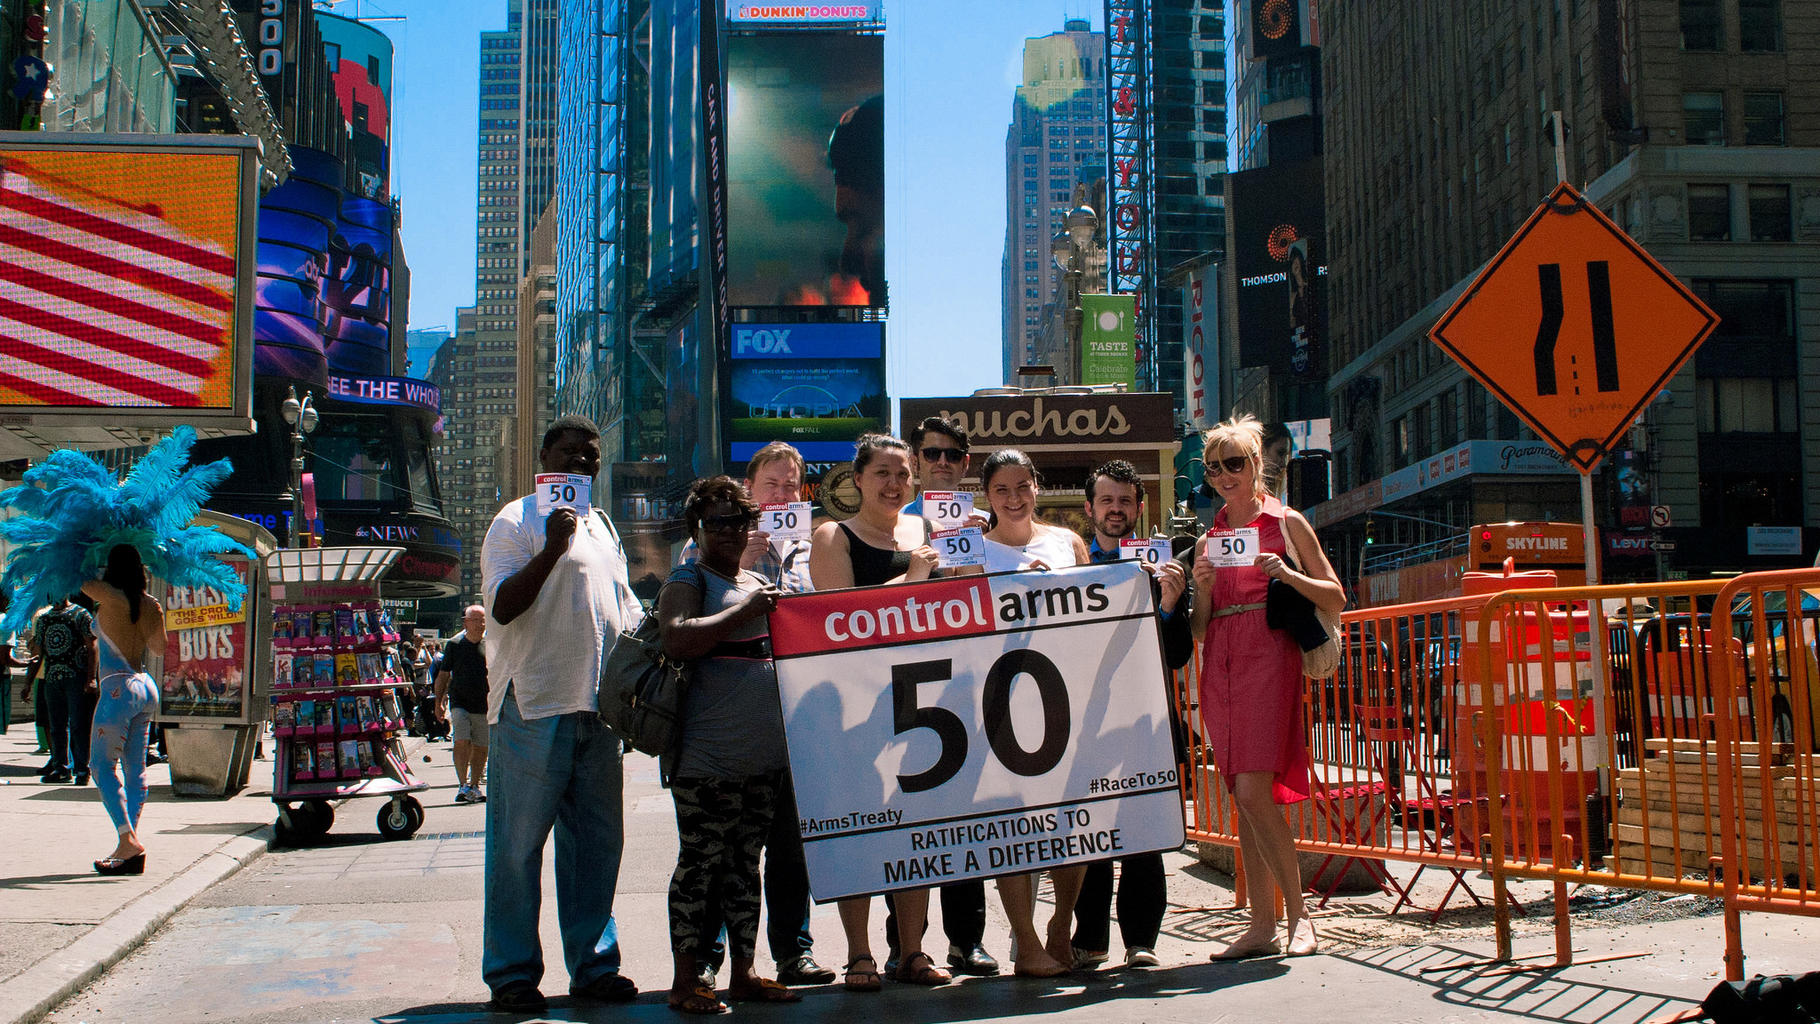 Endspurt im Rennen um 50. Ratifikation: Control-Arms-Campaigner in New York.